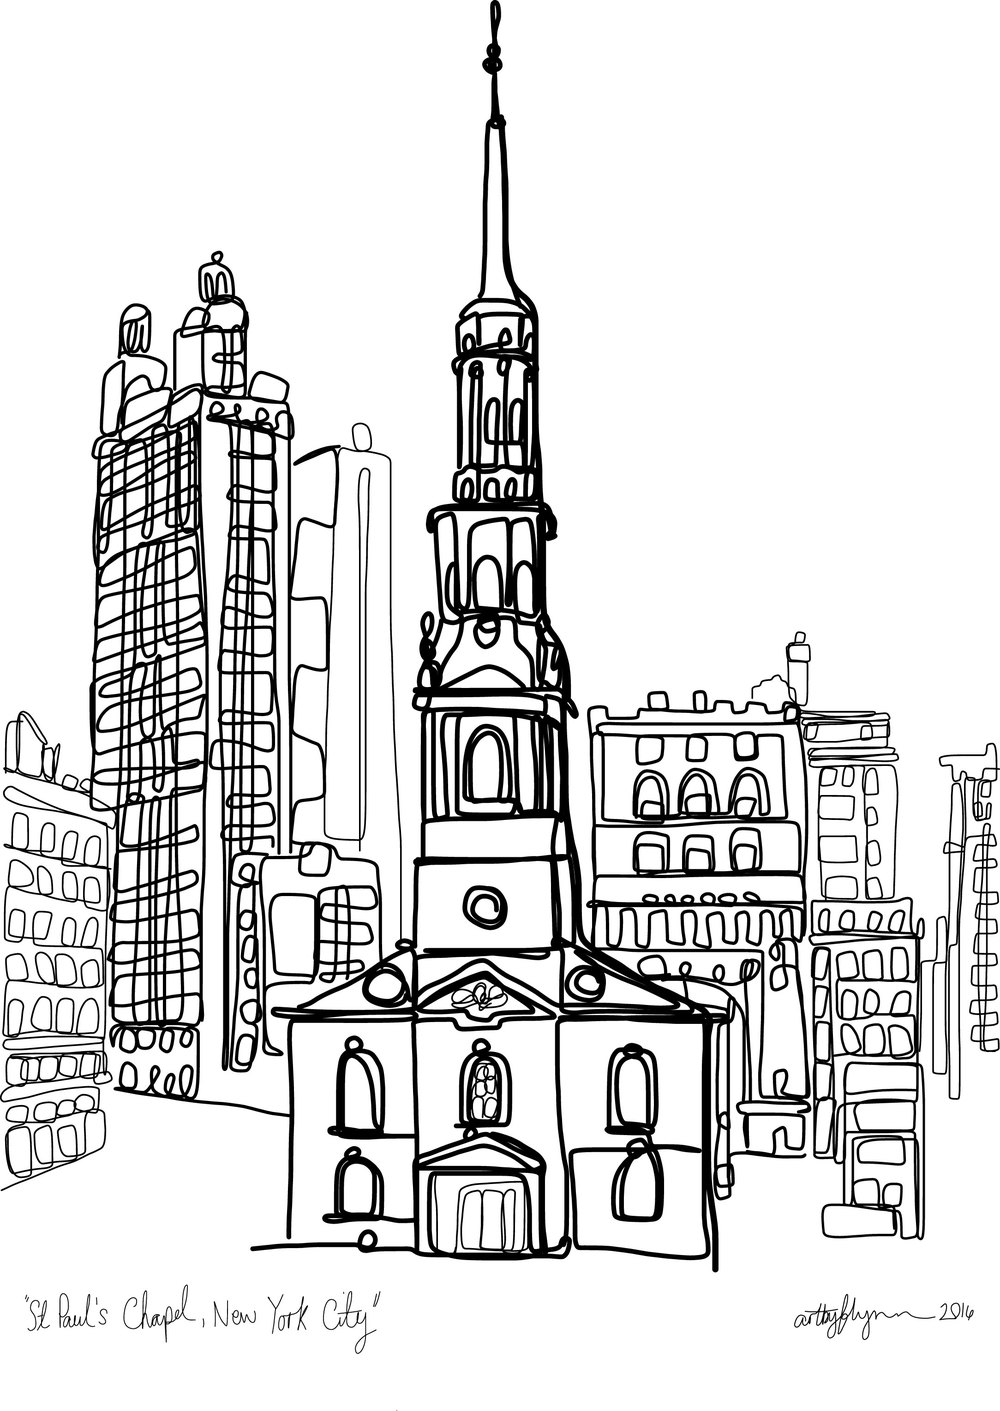 My doodle of the chapel based on a photo taken in 1937